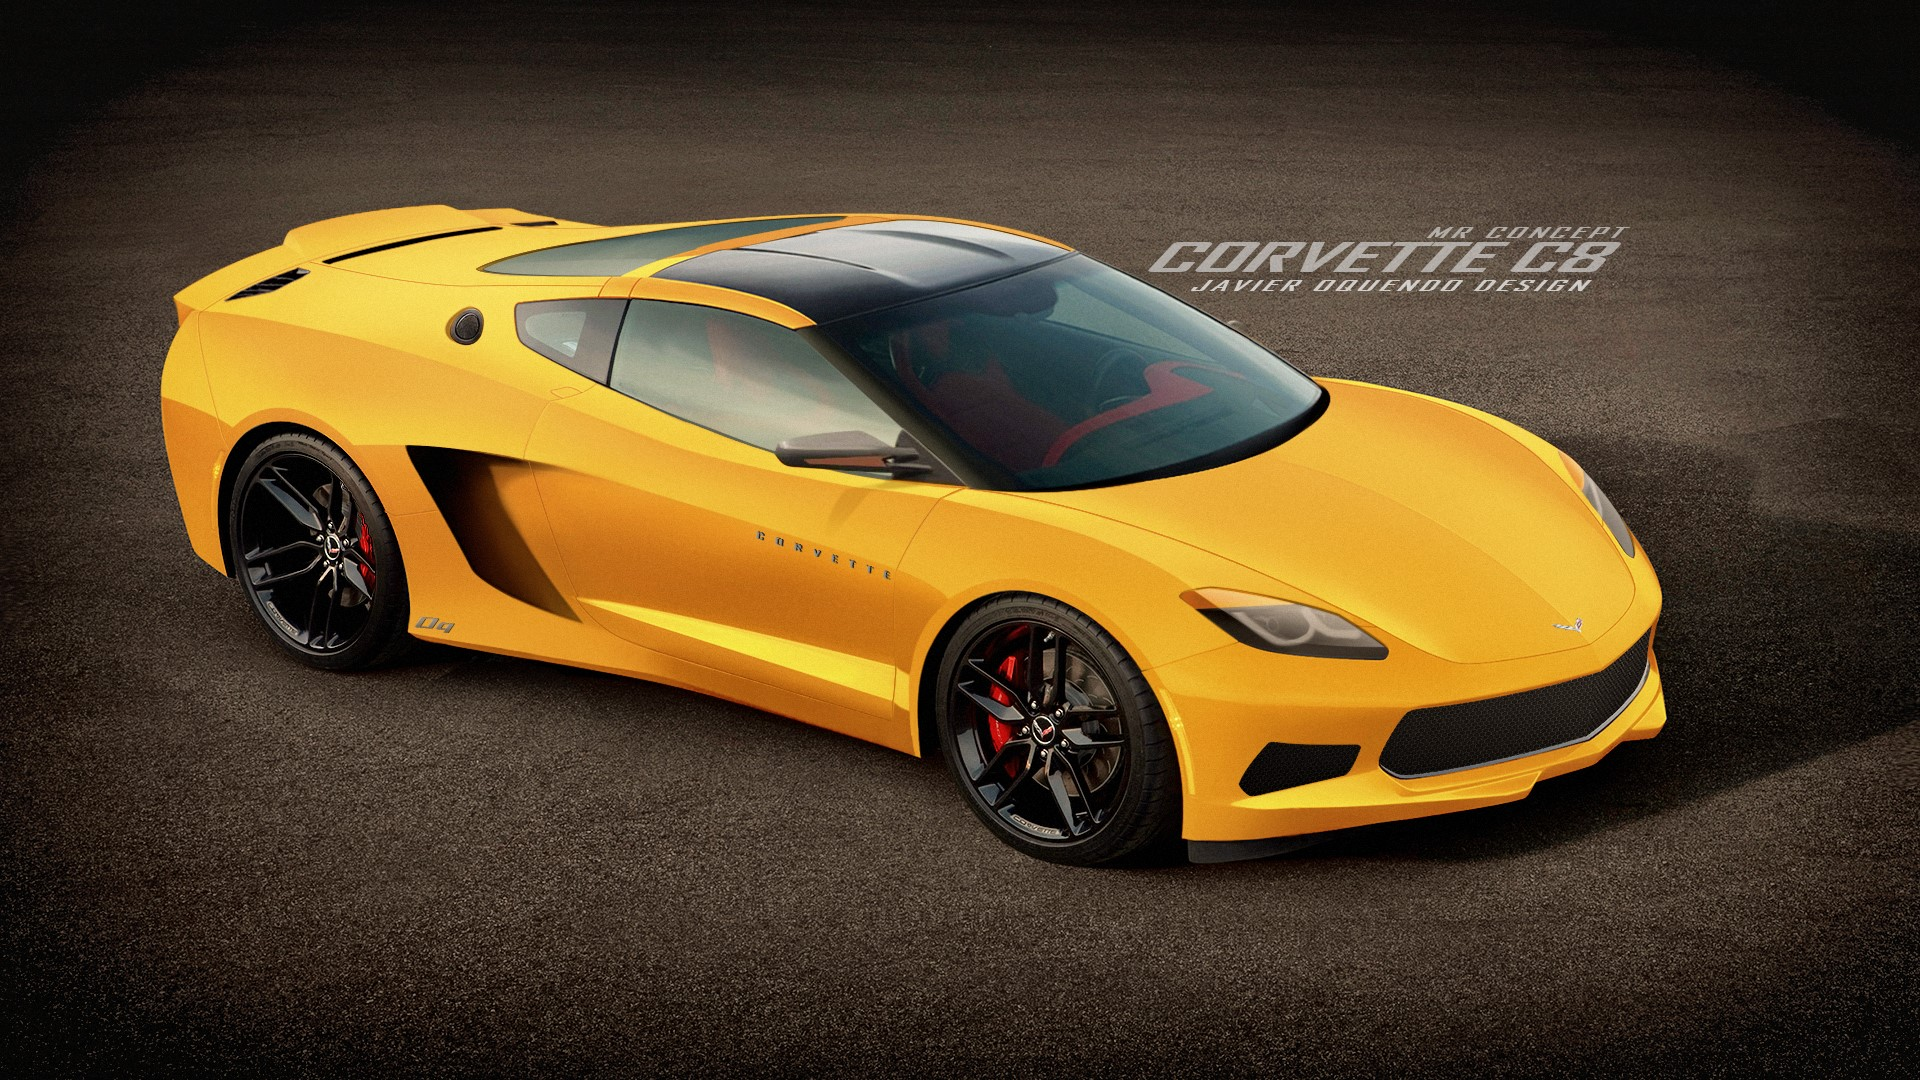 Mid-engined Chevrolet Corvette to debut in January 2018 - Report